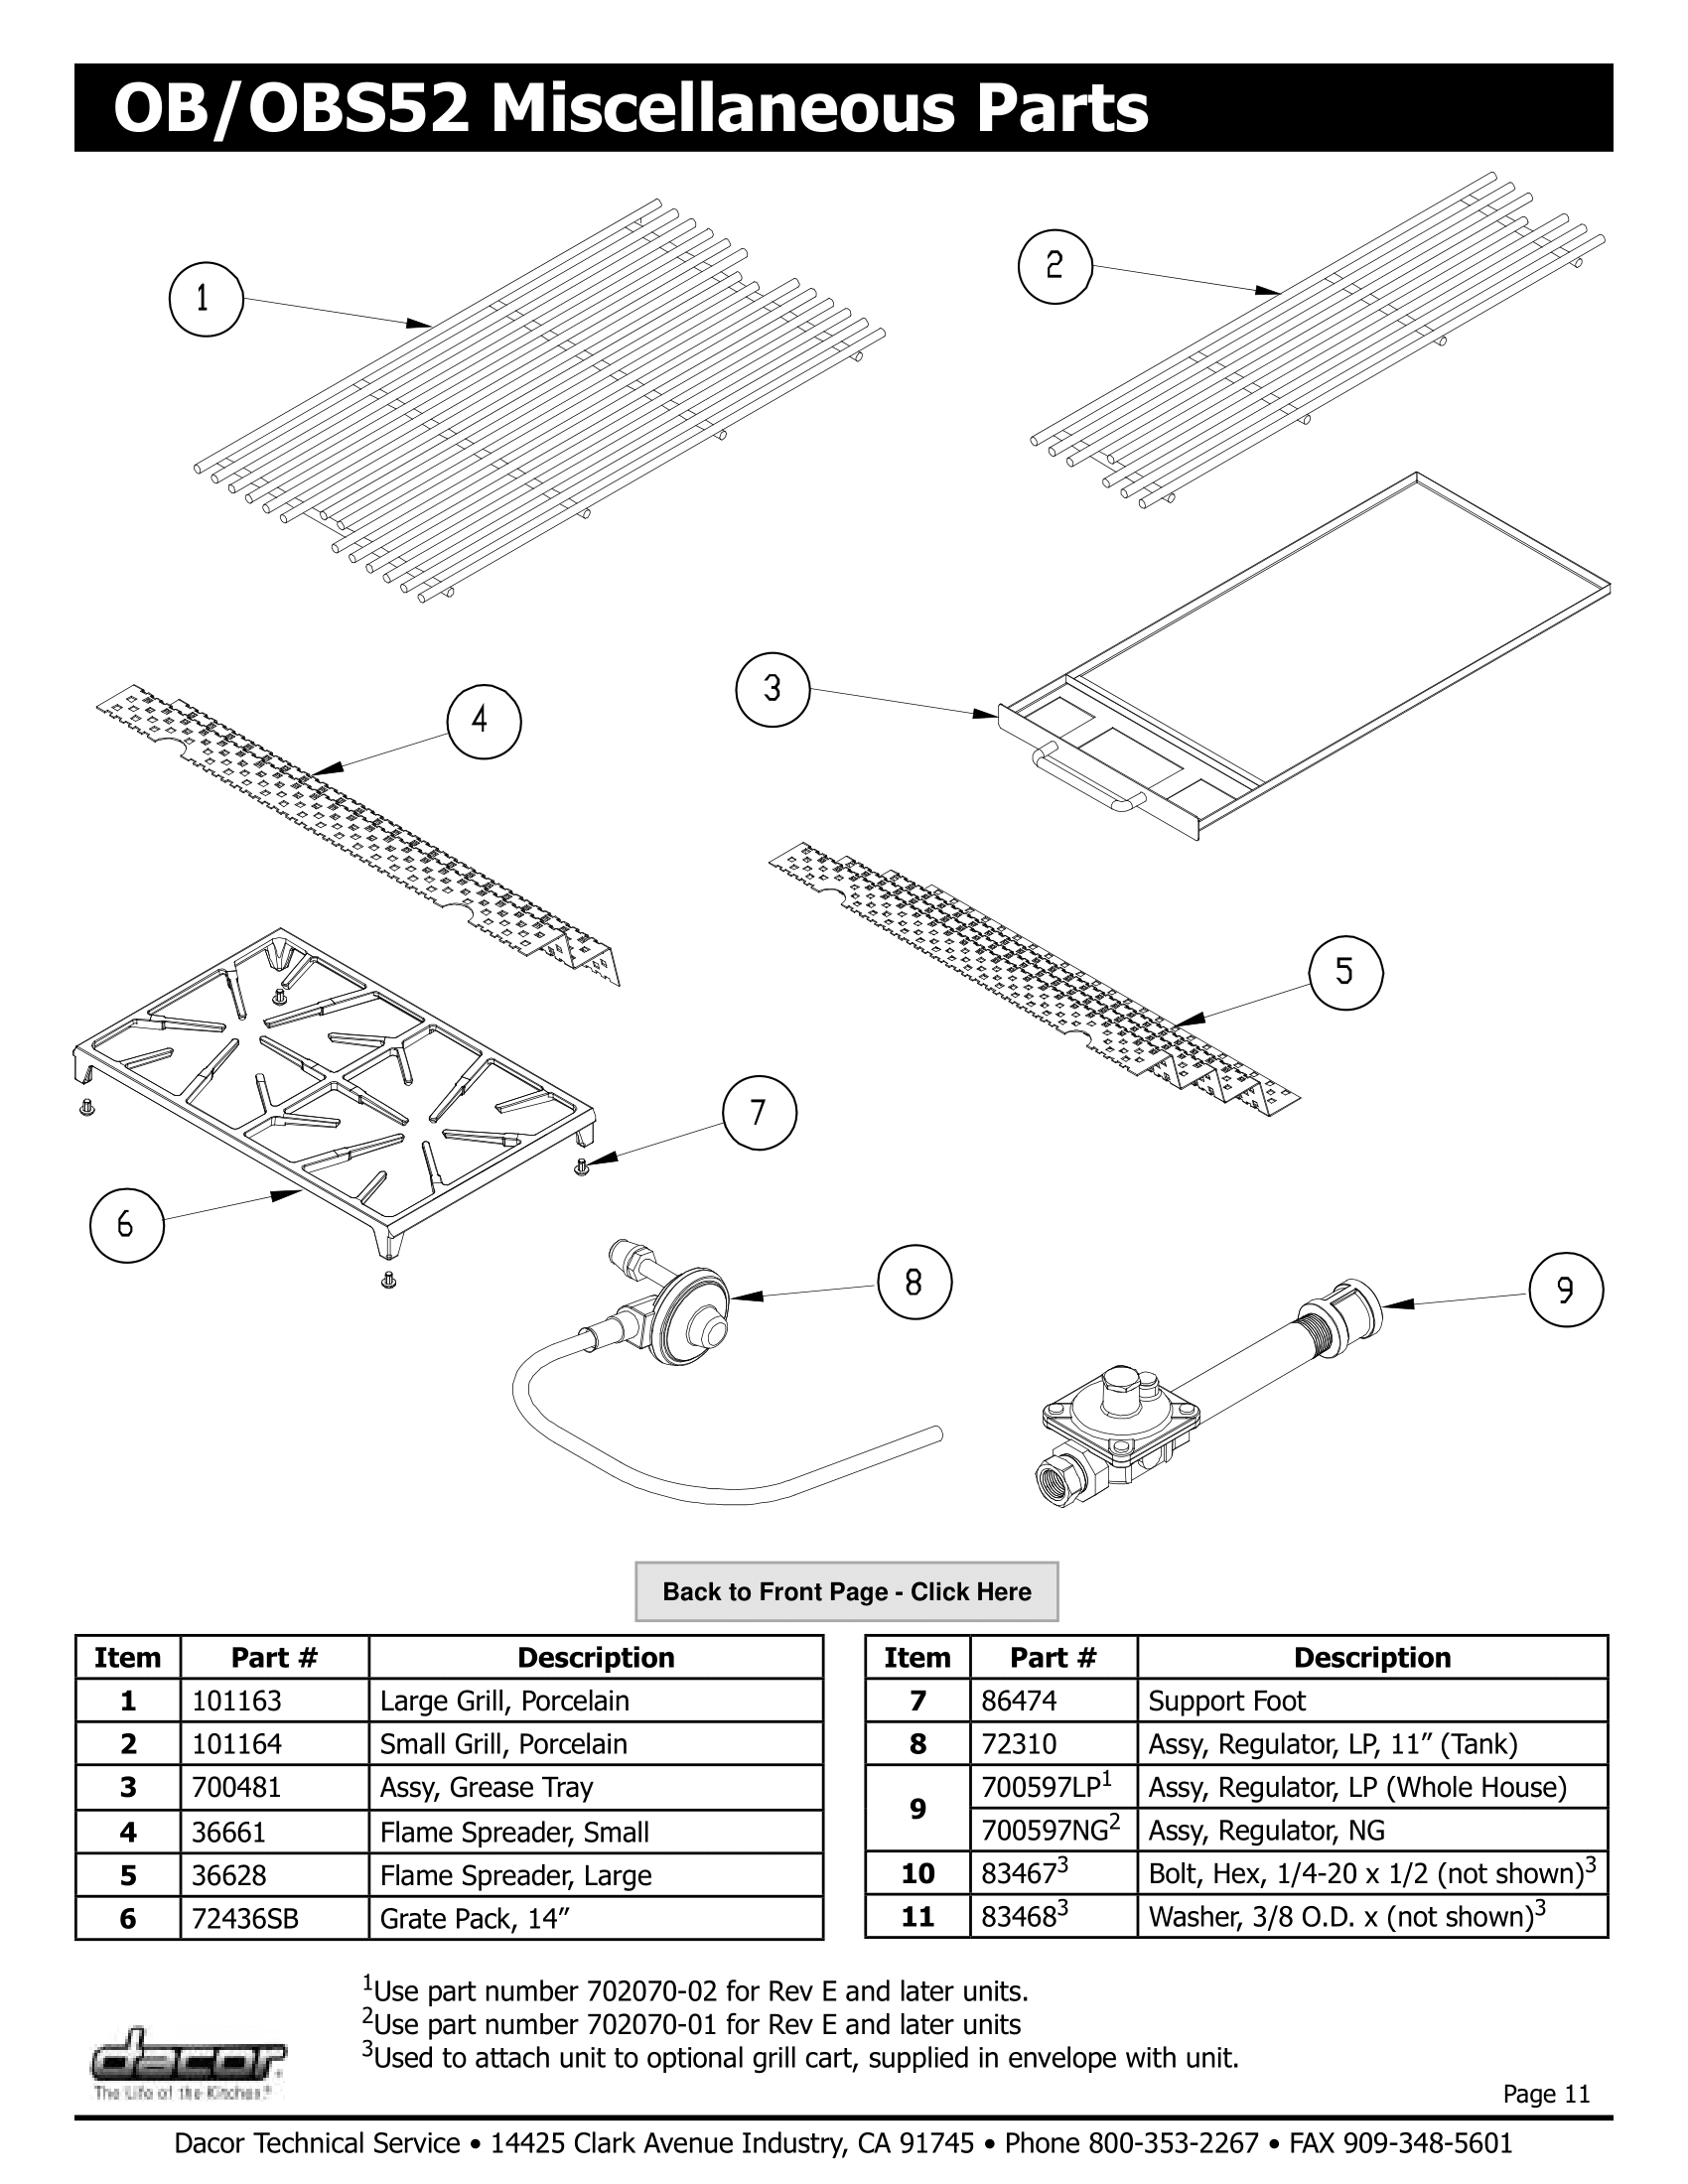 Dacor OB52 Miscellaneous Parts Schematic